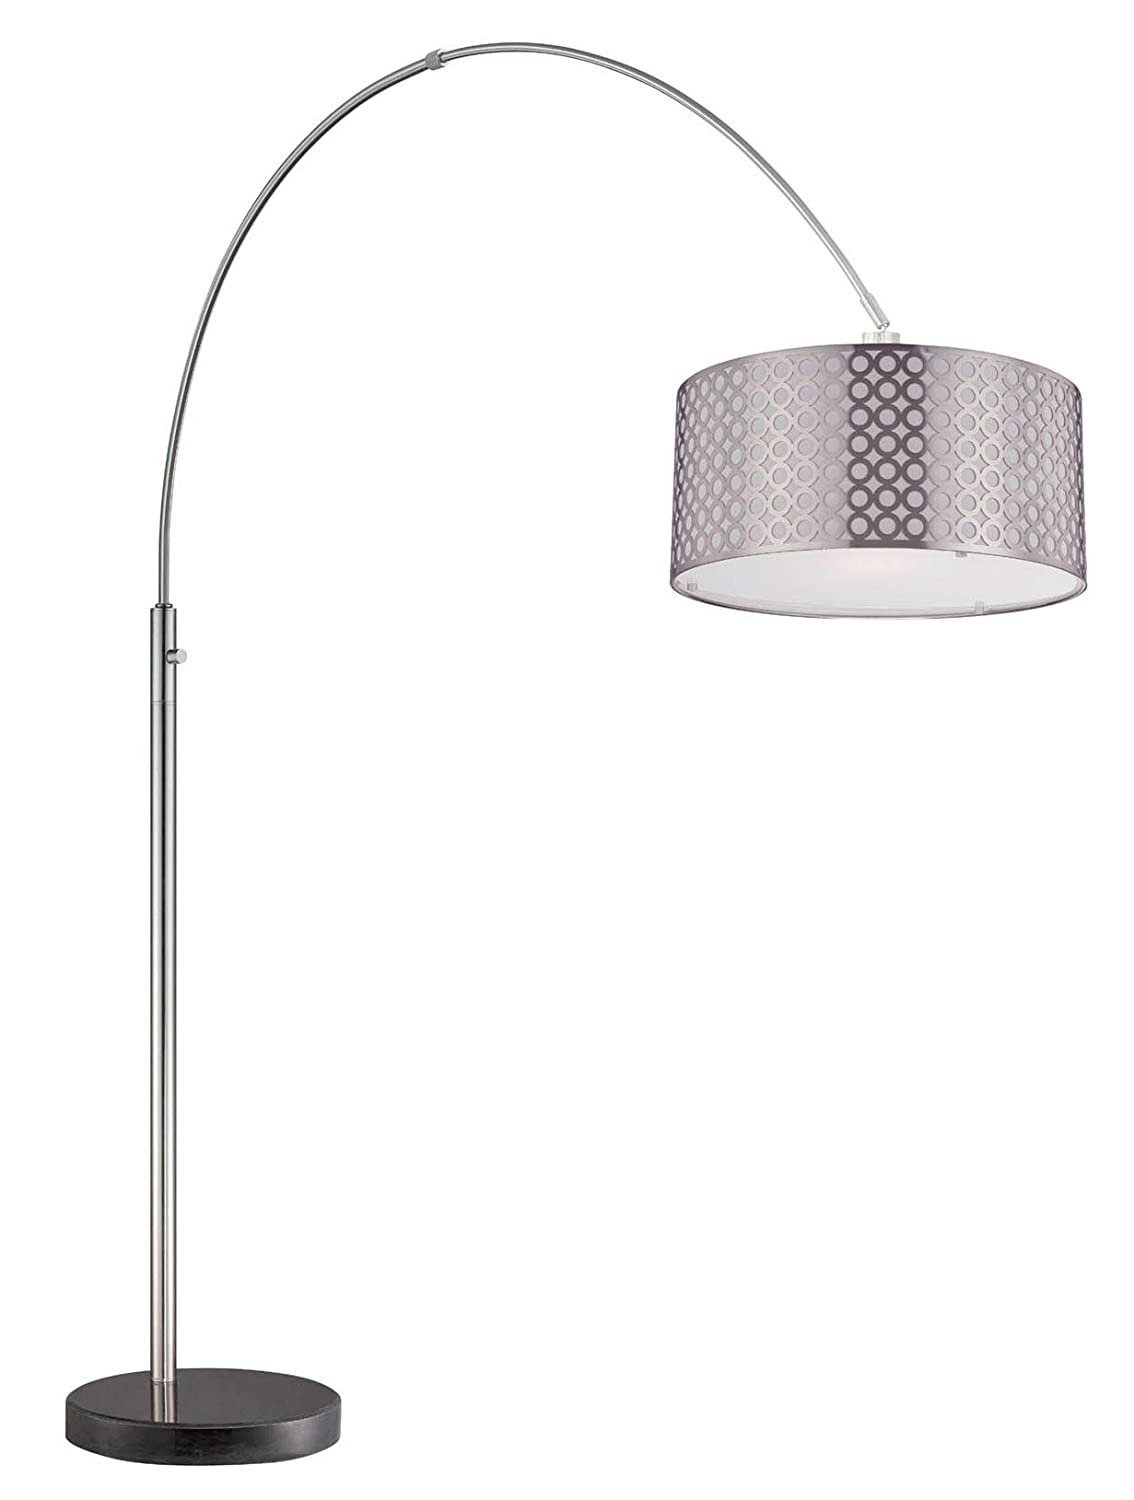 Arch Lamp With Metal Shade Lighting Products Home